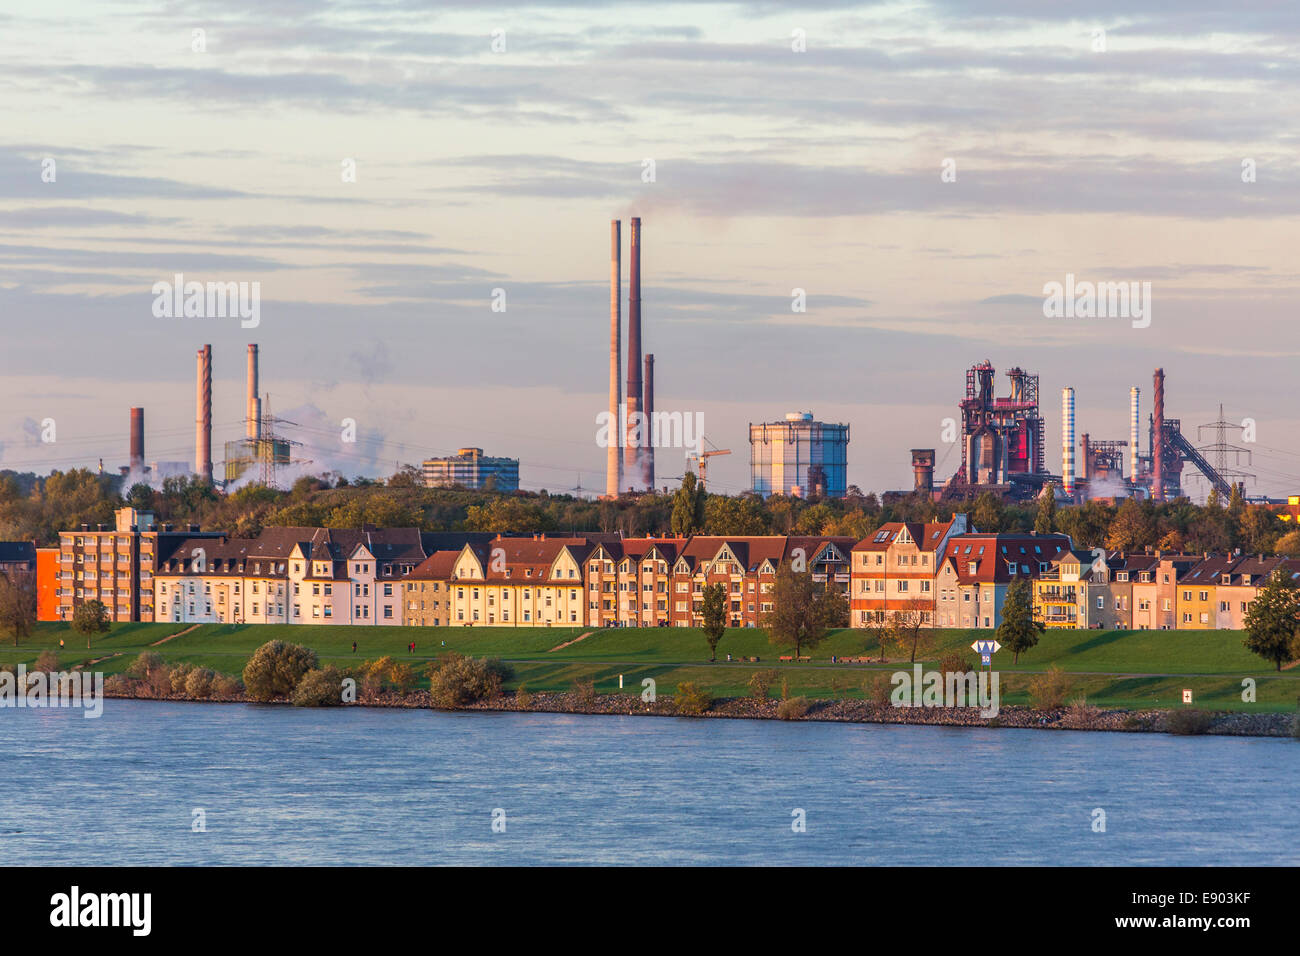 Europe's largest inland port, Duisburg Ruhrort, River Rhine, - Stock Image